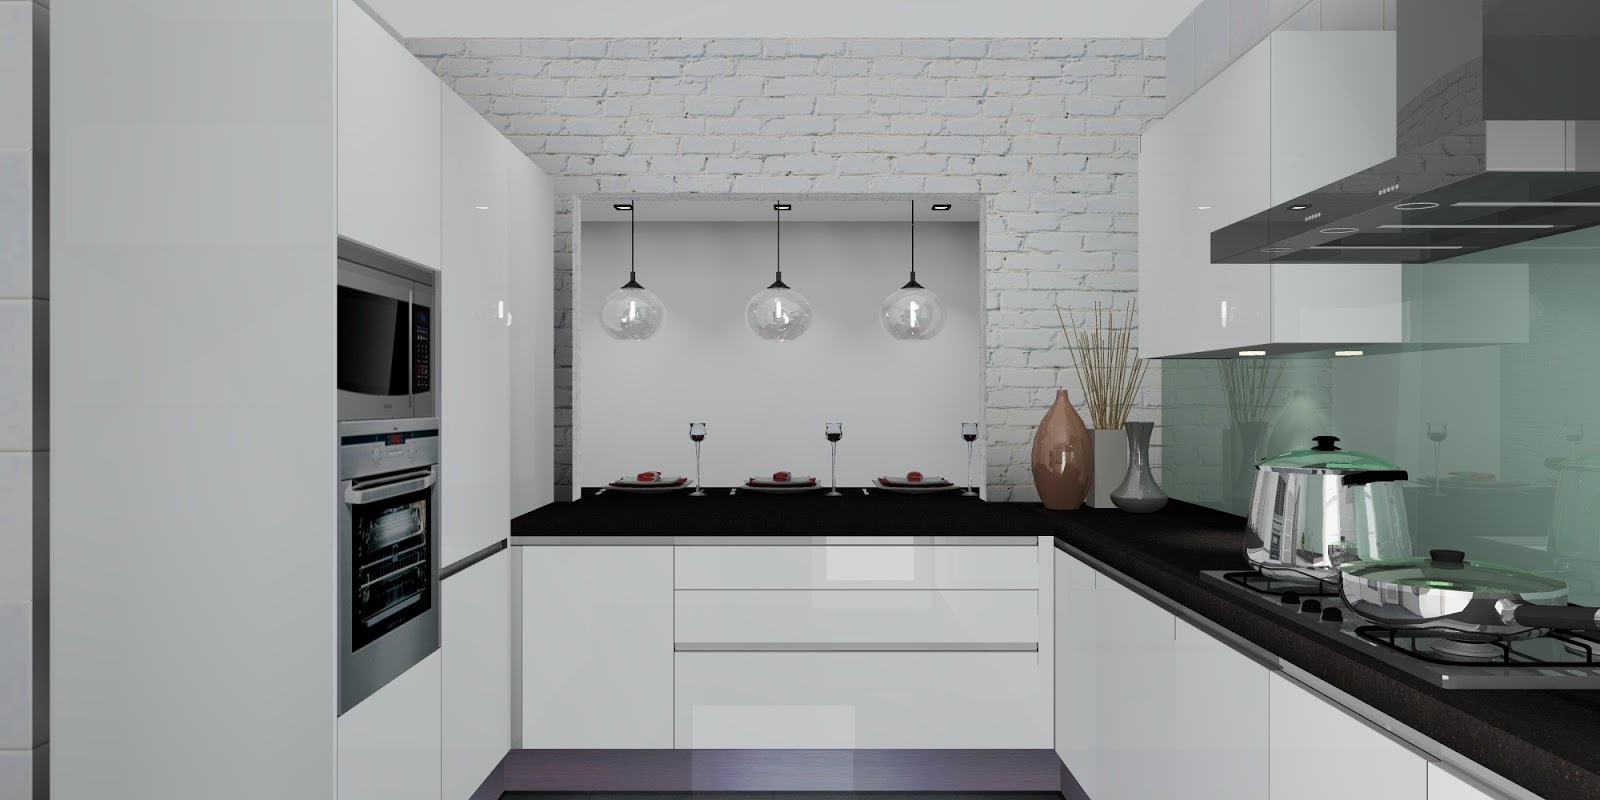 design for white modern kitchen at ampang kl - Malaysia Interior Design Blog